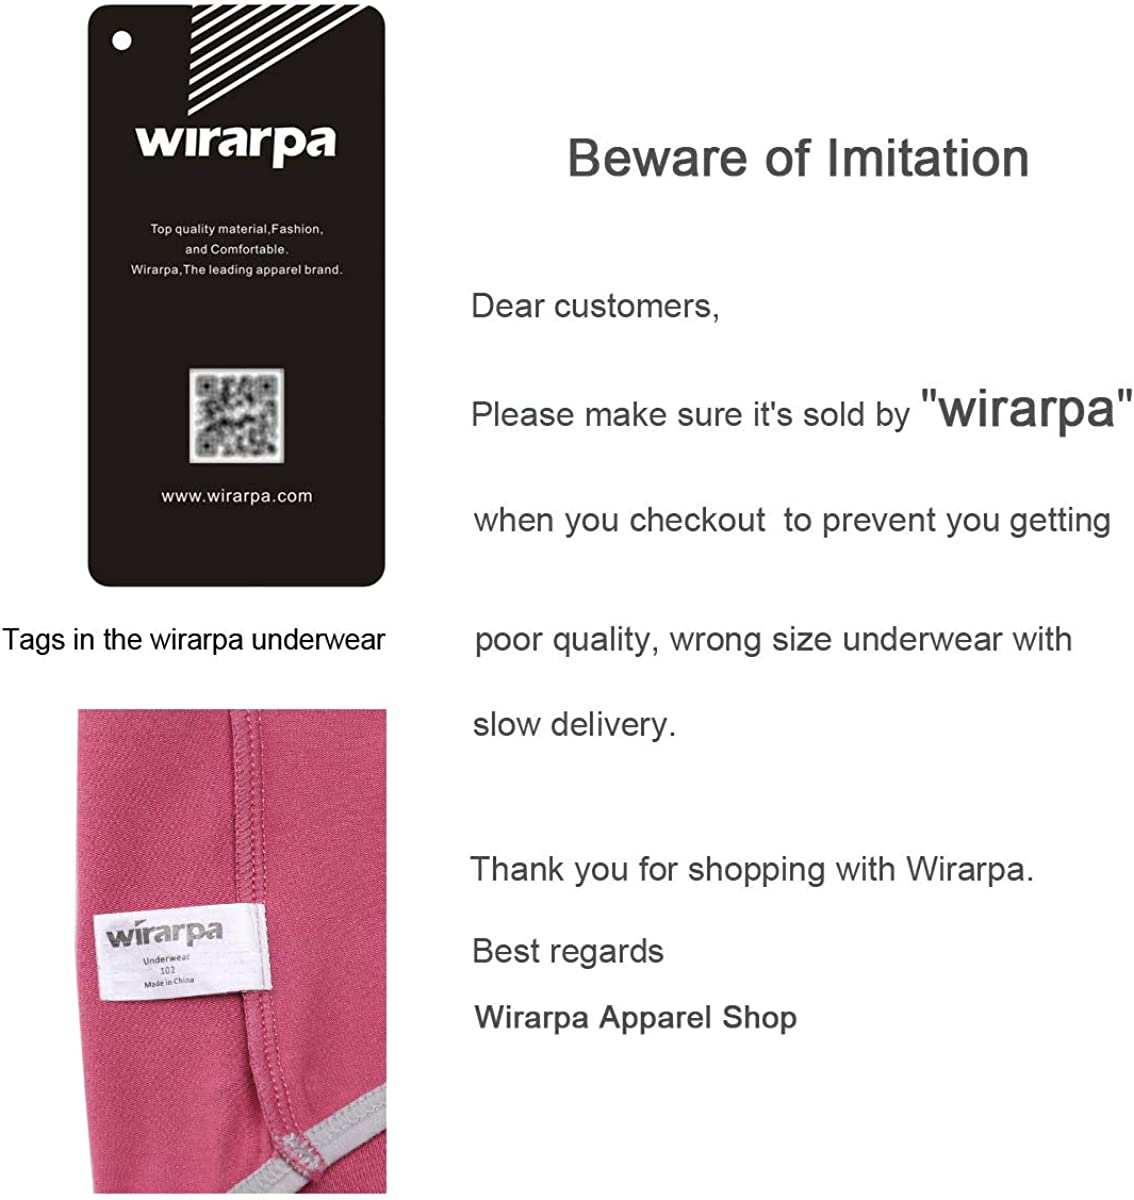 wirarpa Ladies High Waist Knickers Cotton Underwear Full Coverage Briefs Lovely Panties for Women Multipack